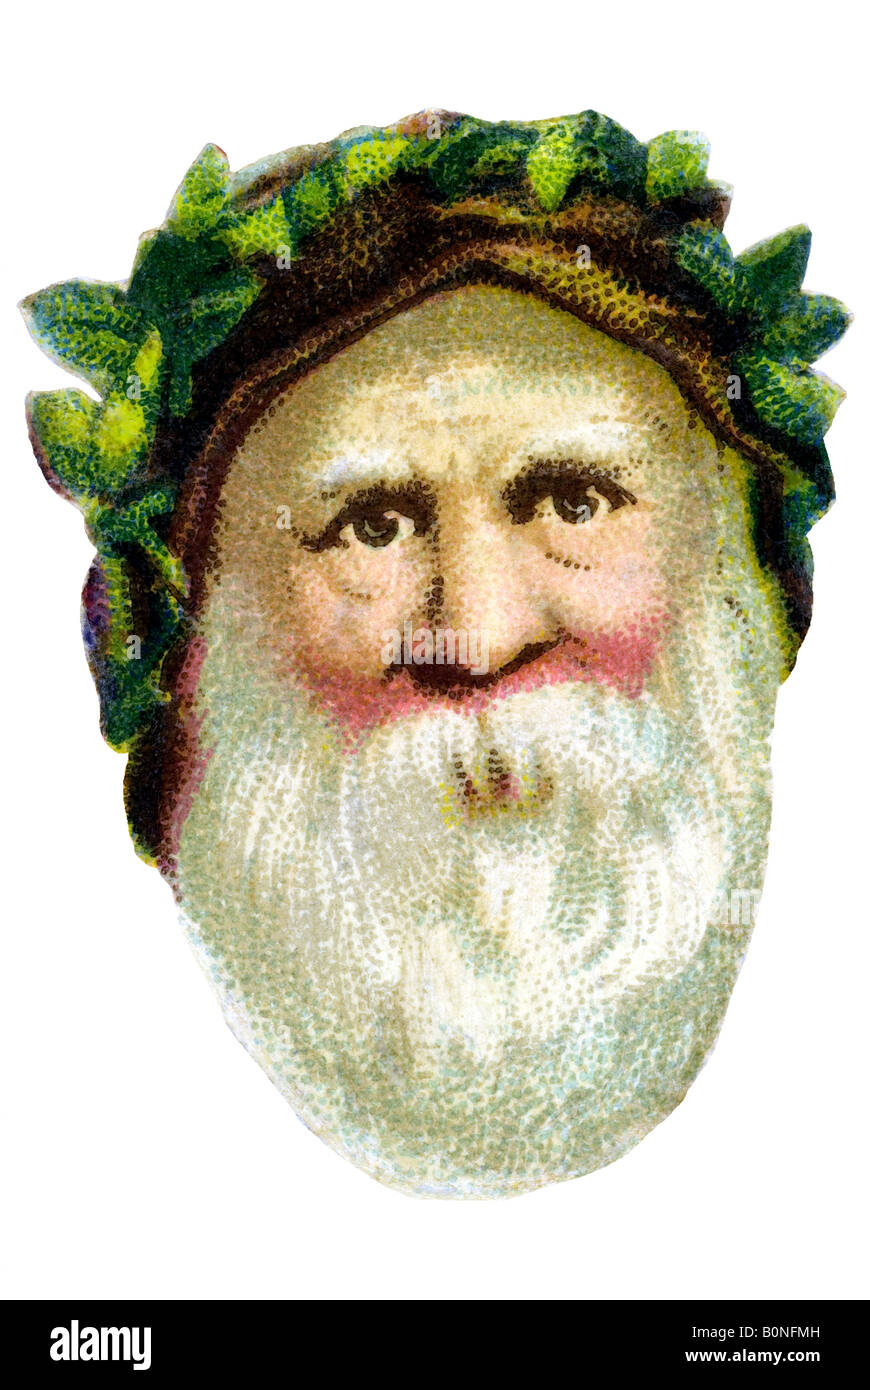 old fashioned Father Christmas brown cap white beard green leaves 19th century Germany - Stock Image